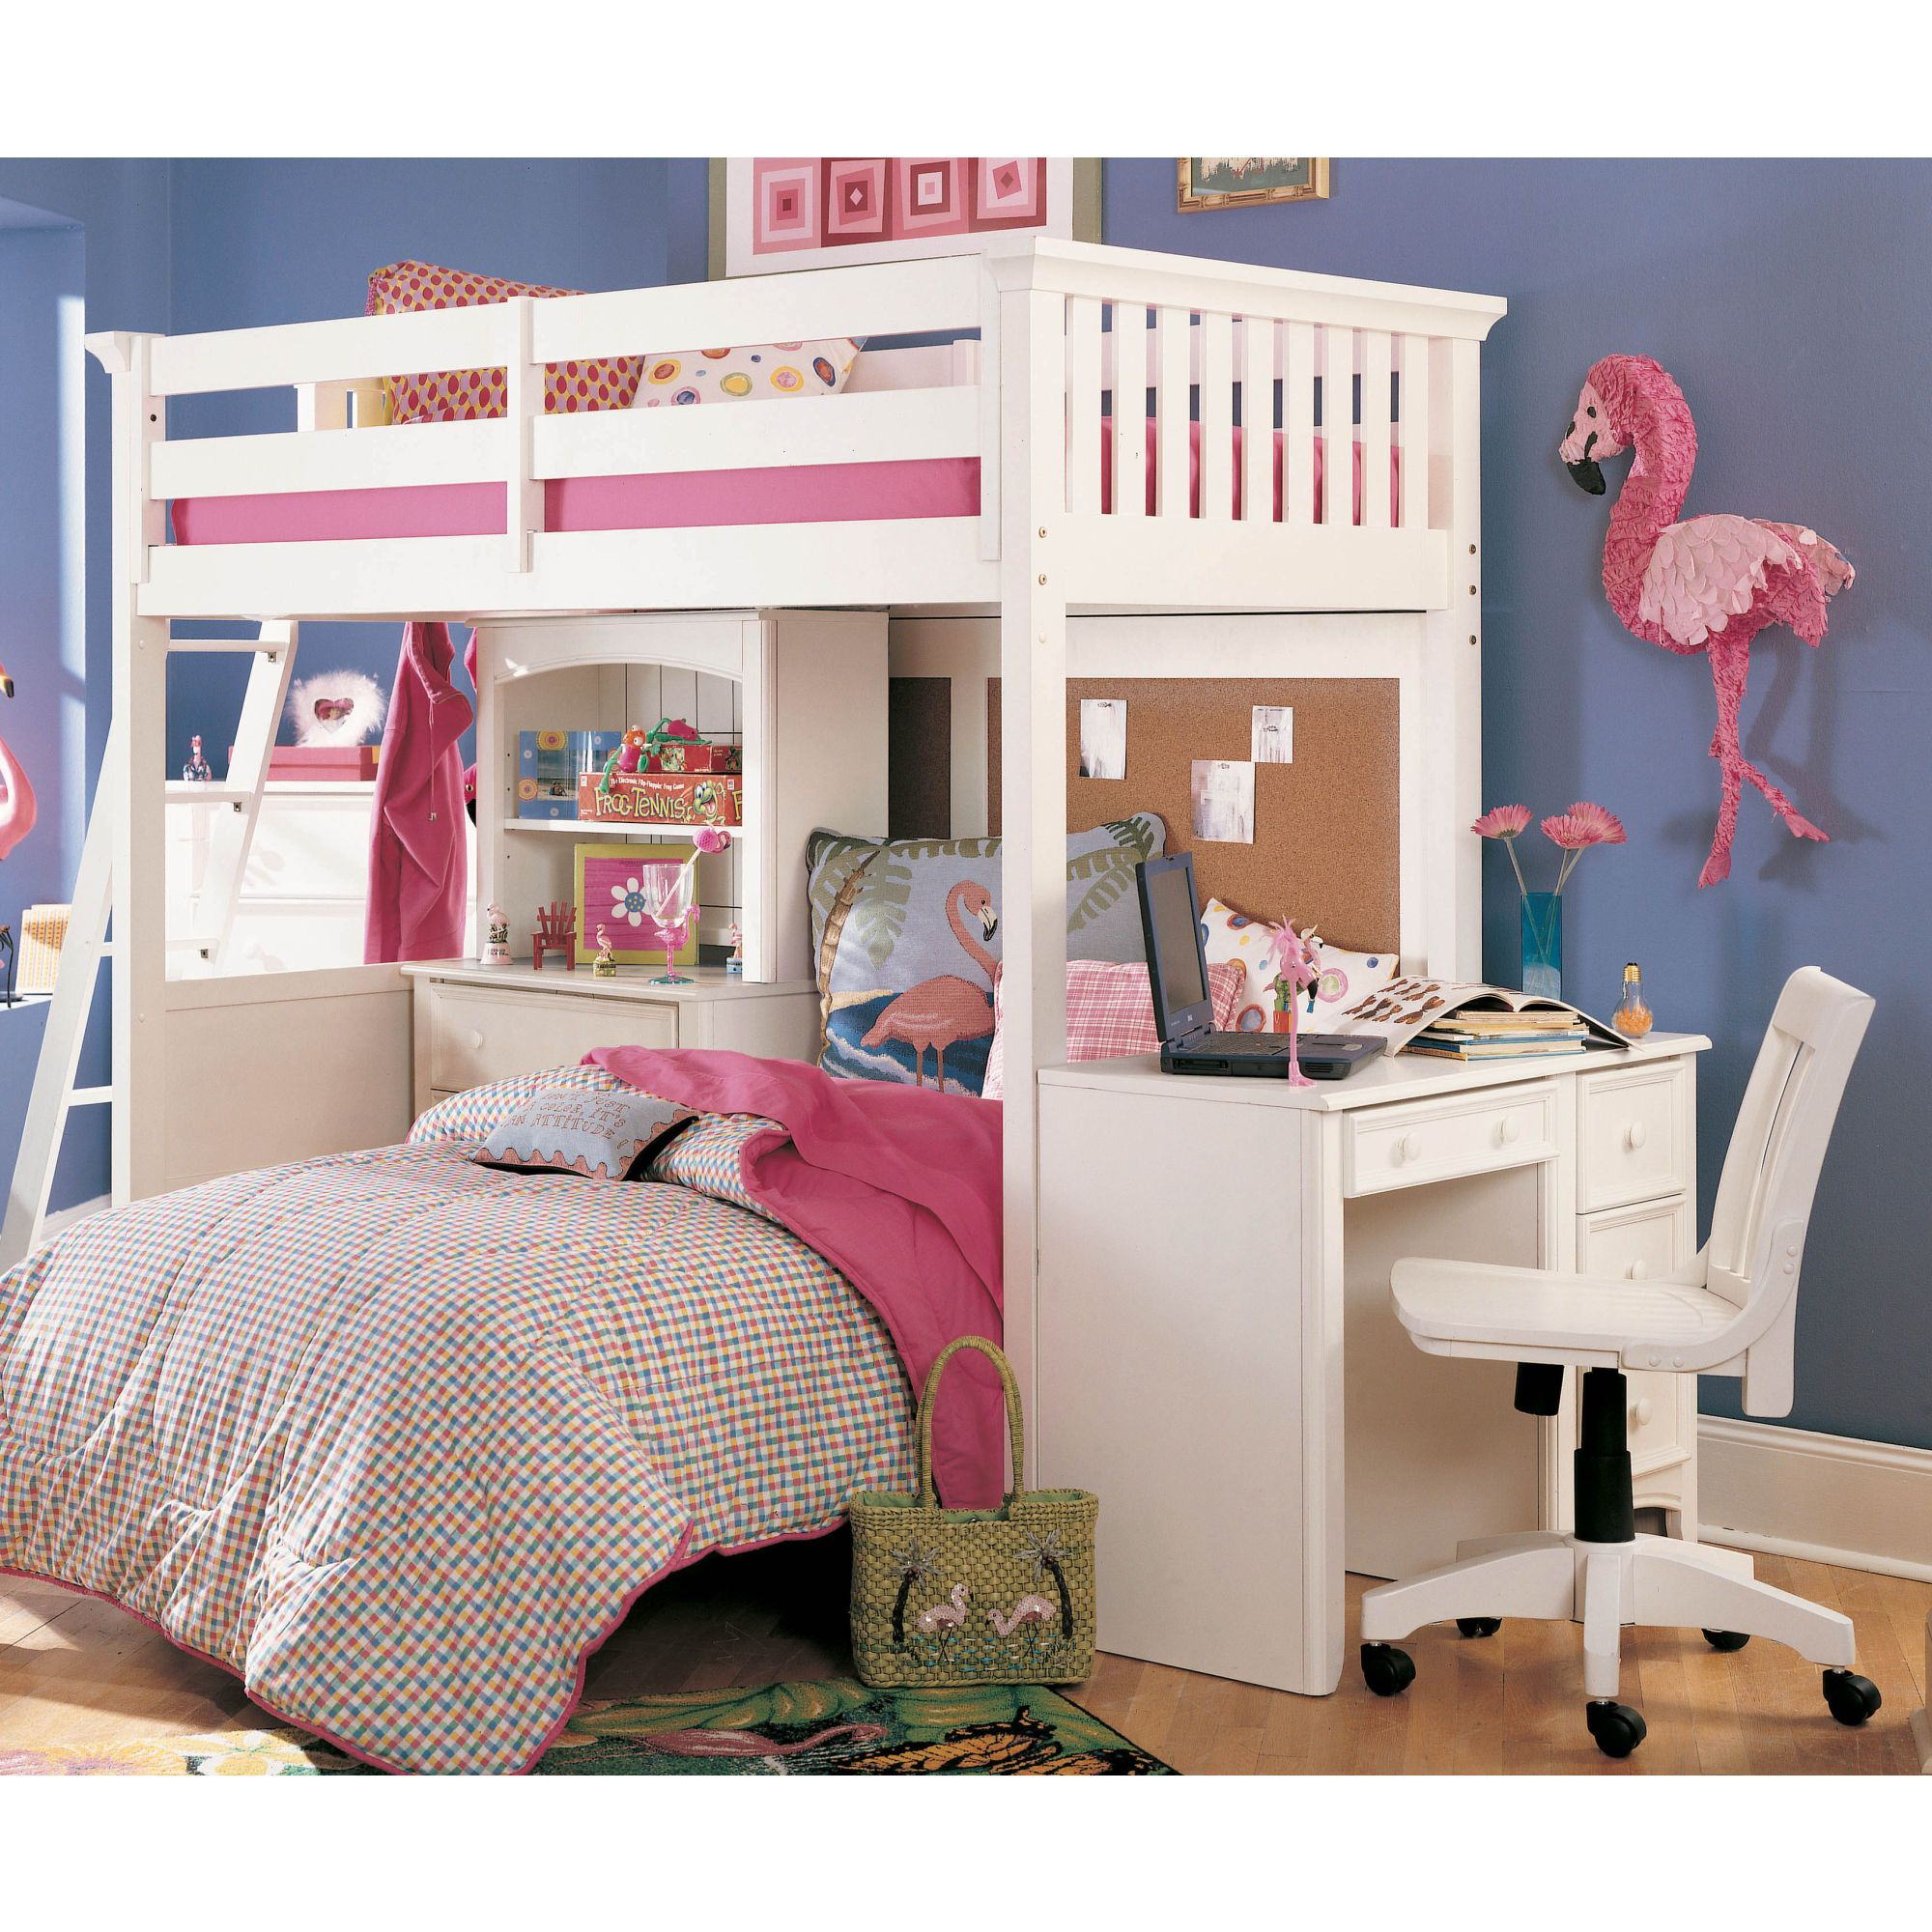 Small loft bed ideas  Possible idea for the girls bunk bed put a queen on bottom for